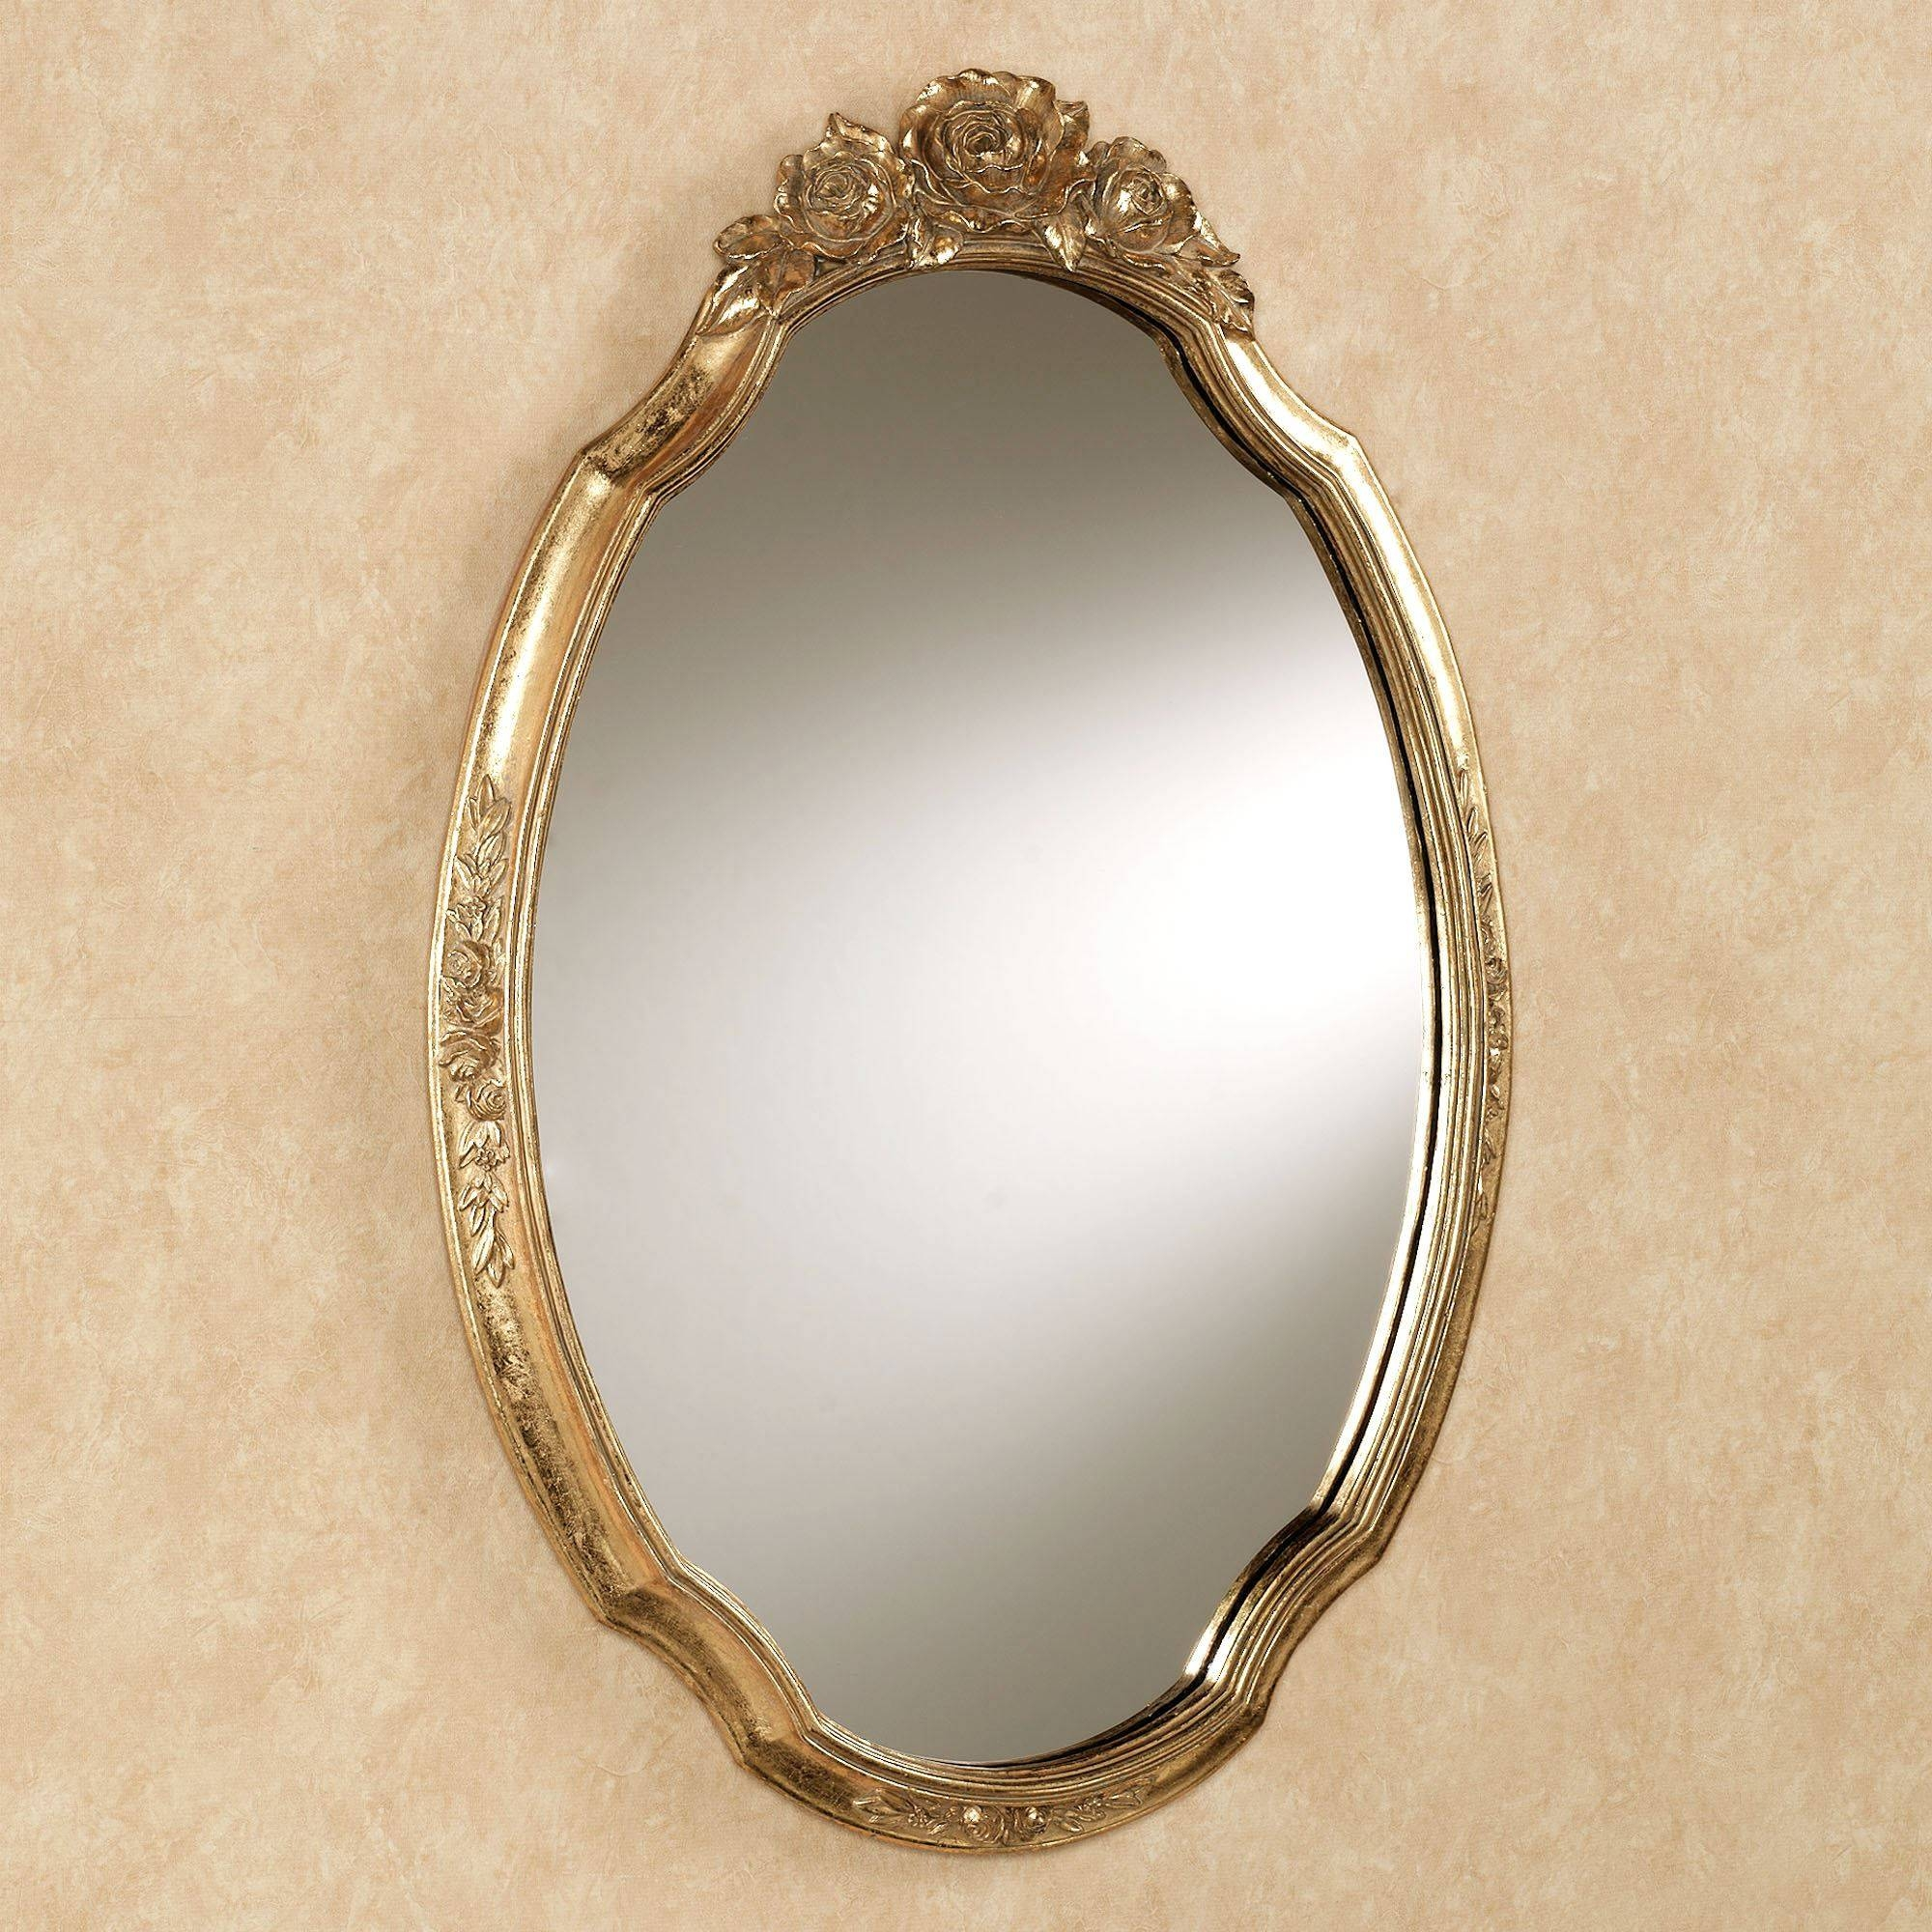 Jorah Rose Oval Wall Mirror Pertaining To Oval Wall Mirrors (View 14 of 25)